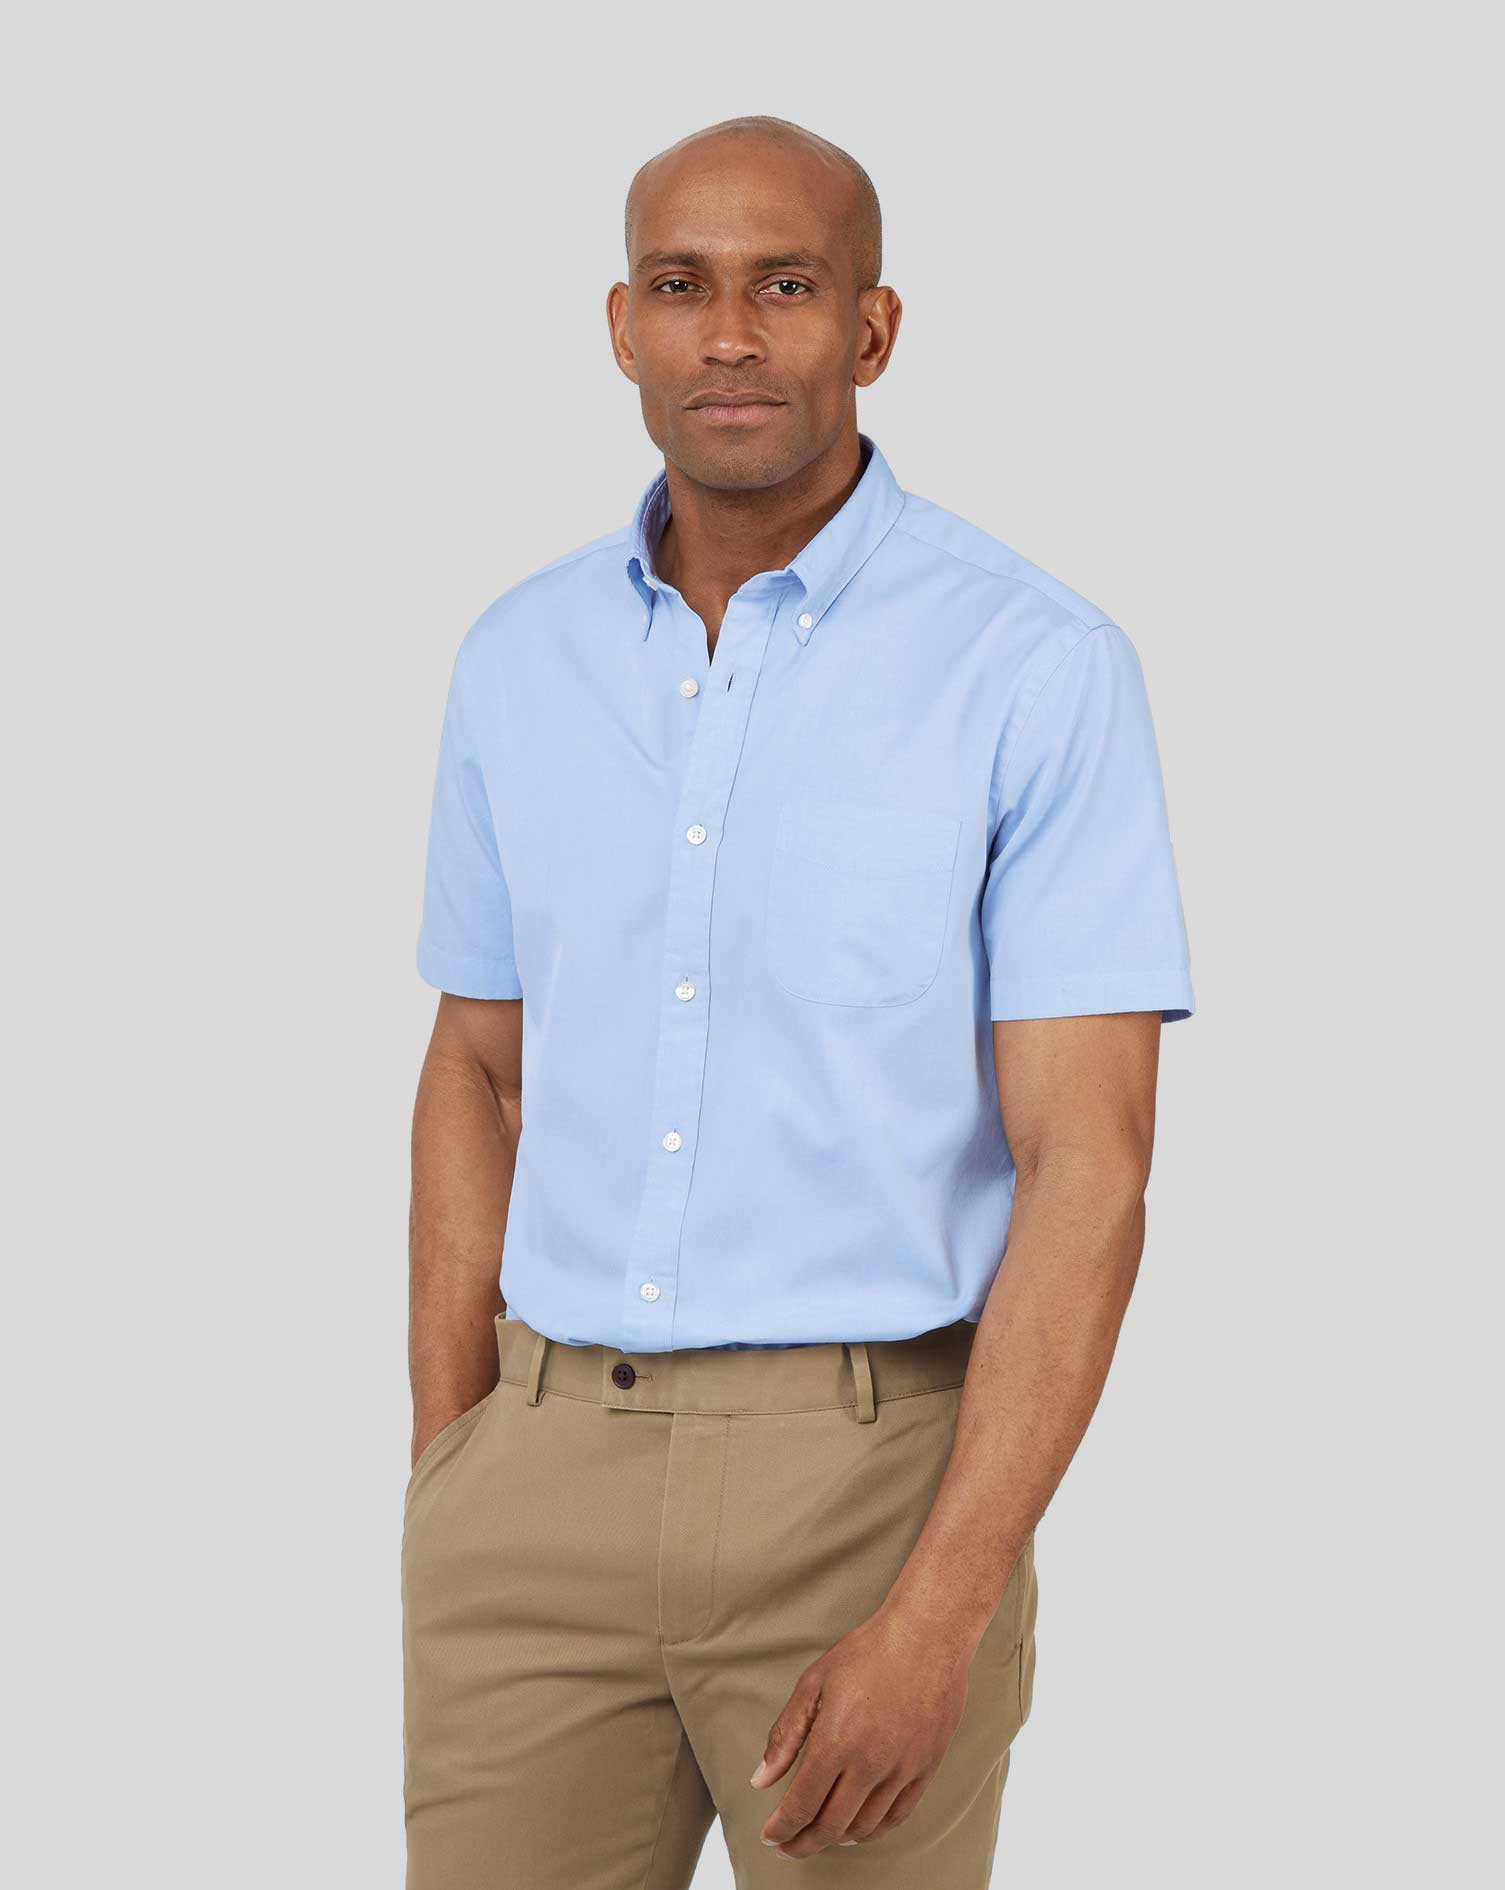 Slim Fit Short Sleeve Button-Down Washed Oxford Sky Blue Cotton Shirt Single Cuff Size XXL by Charle